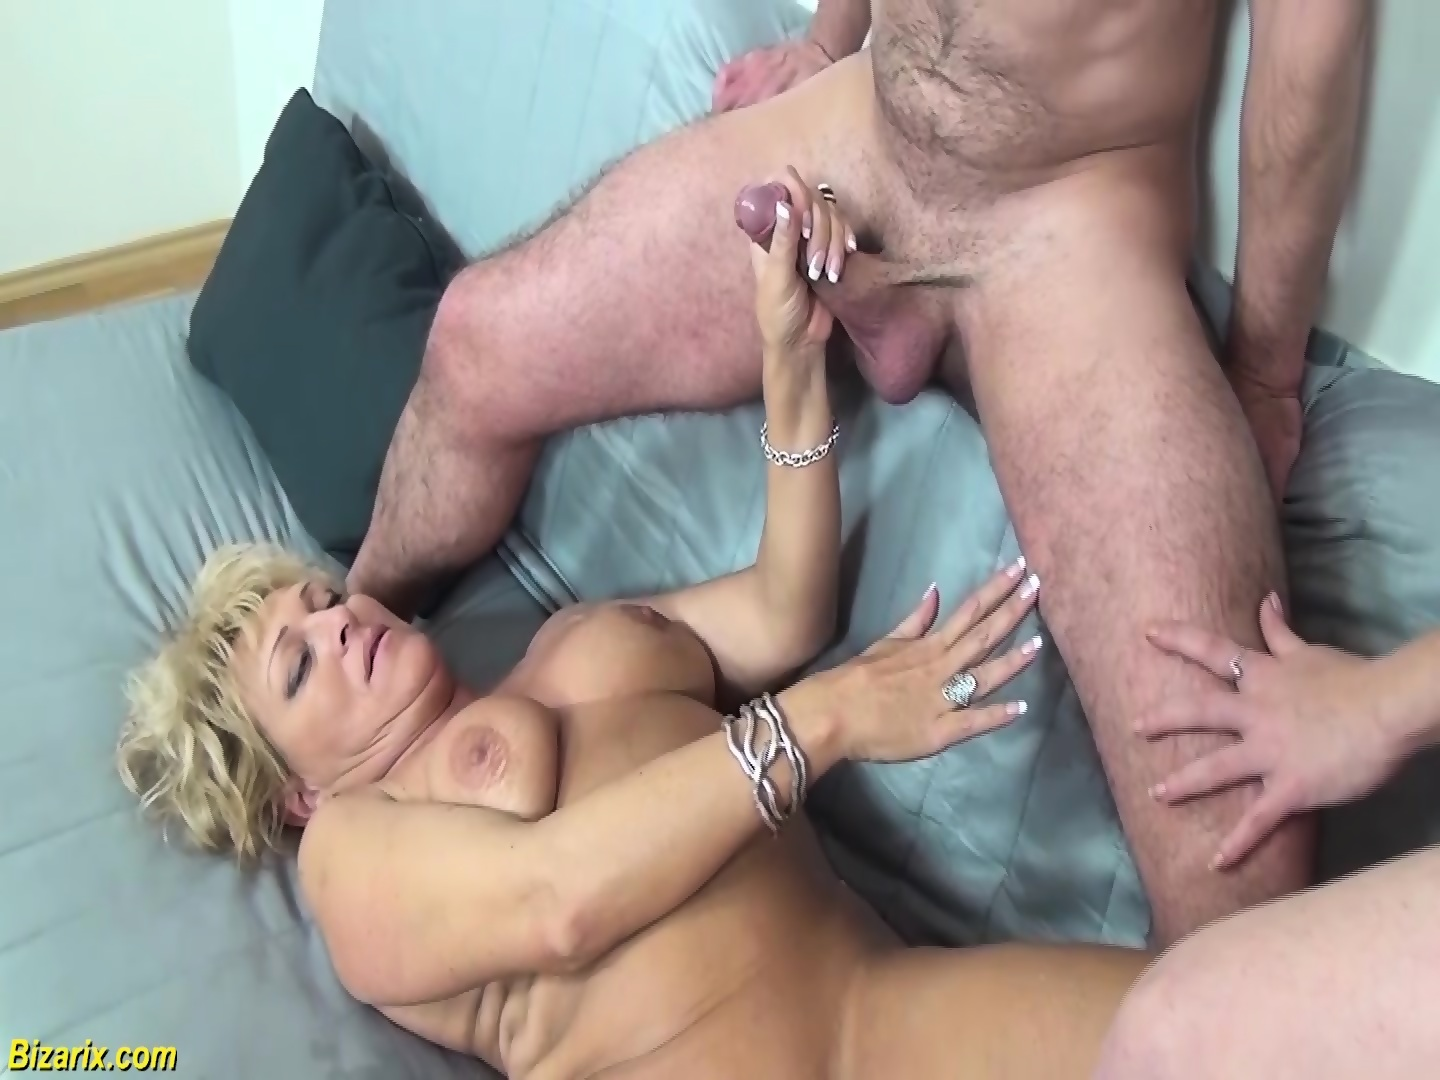 Boy finger hole cock cage